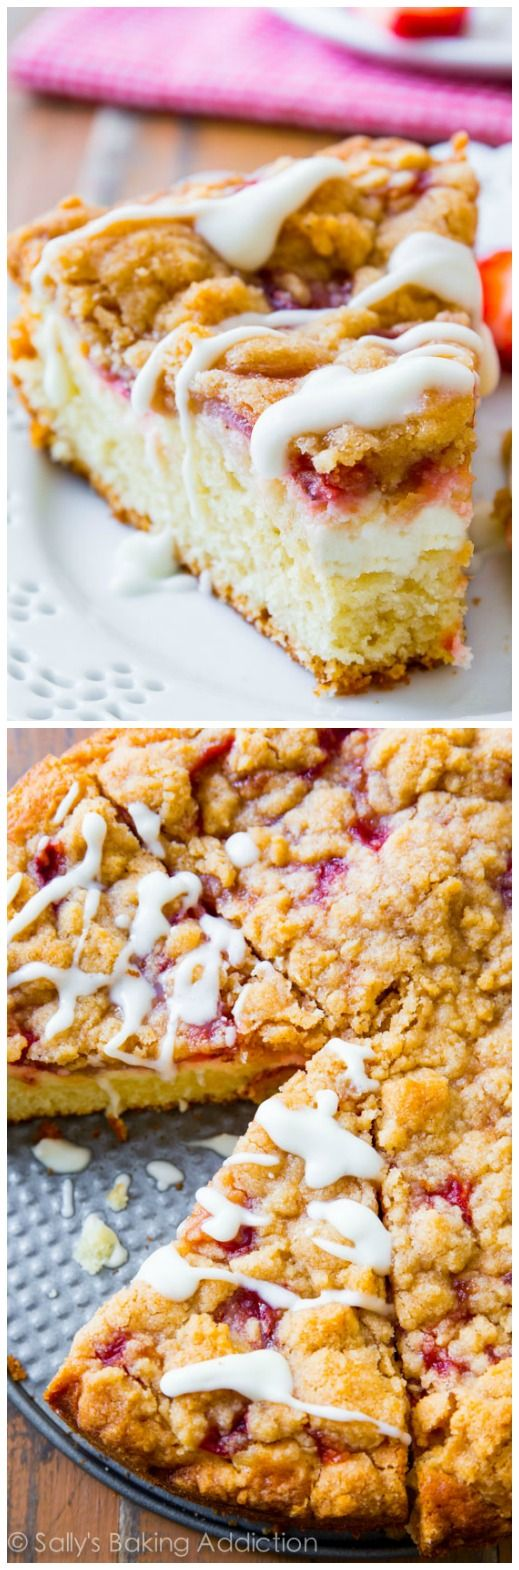 Strawberries 'n Cream Crumb Cake - Complete with a buttery cake, sweet strawberries, cheesecake filling, and vanilla glaze!